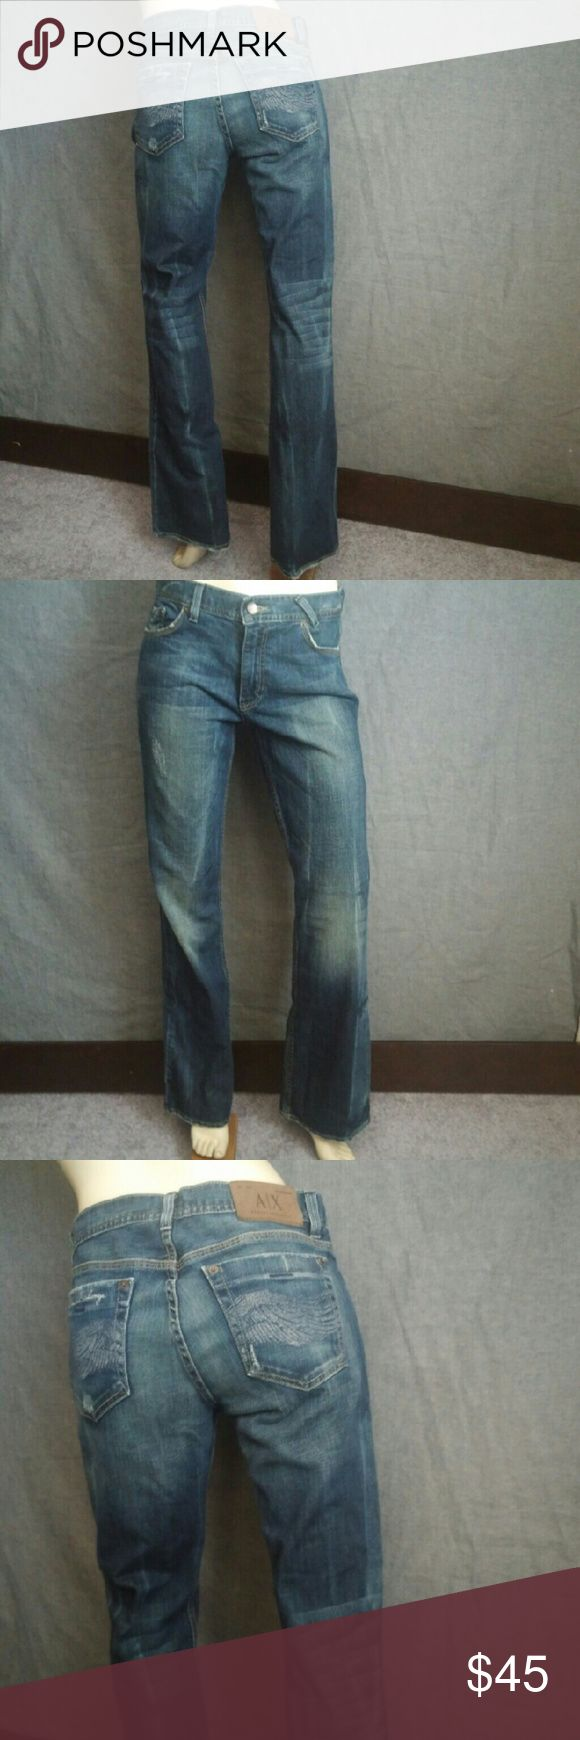 Armani Exchange Boot Cut Jeans Size 10 L33 Jeans are in pre-loved good condition with minimal wear on hems. The style nama is Distressed Potassium Streak.  Waist measures 32 inches, rise is 9 inches, hips are 40 inches and the inseam is 33 inches. Armani Exchange Jeans Boot Cut